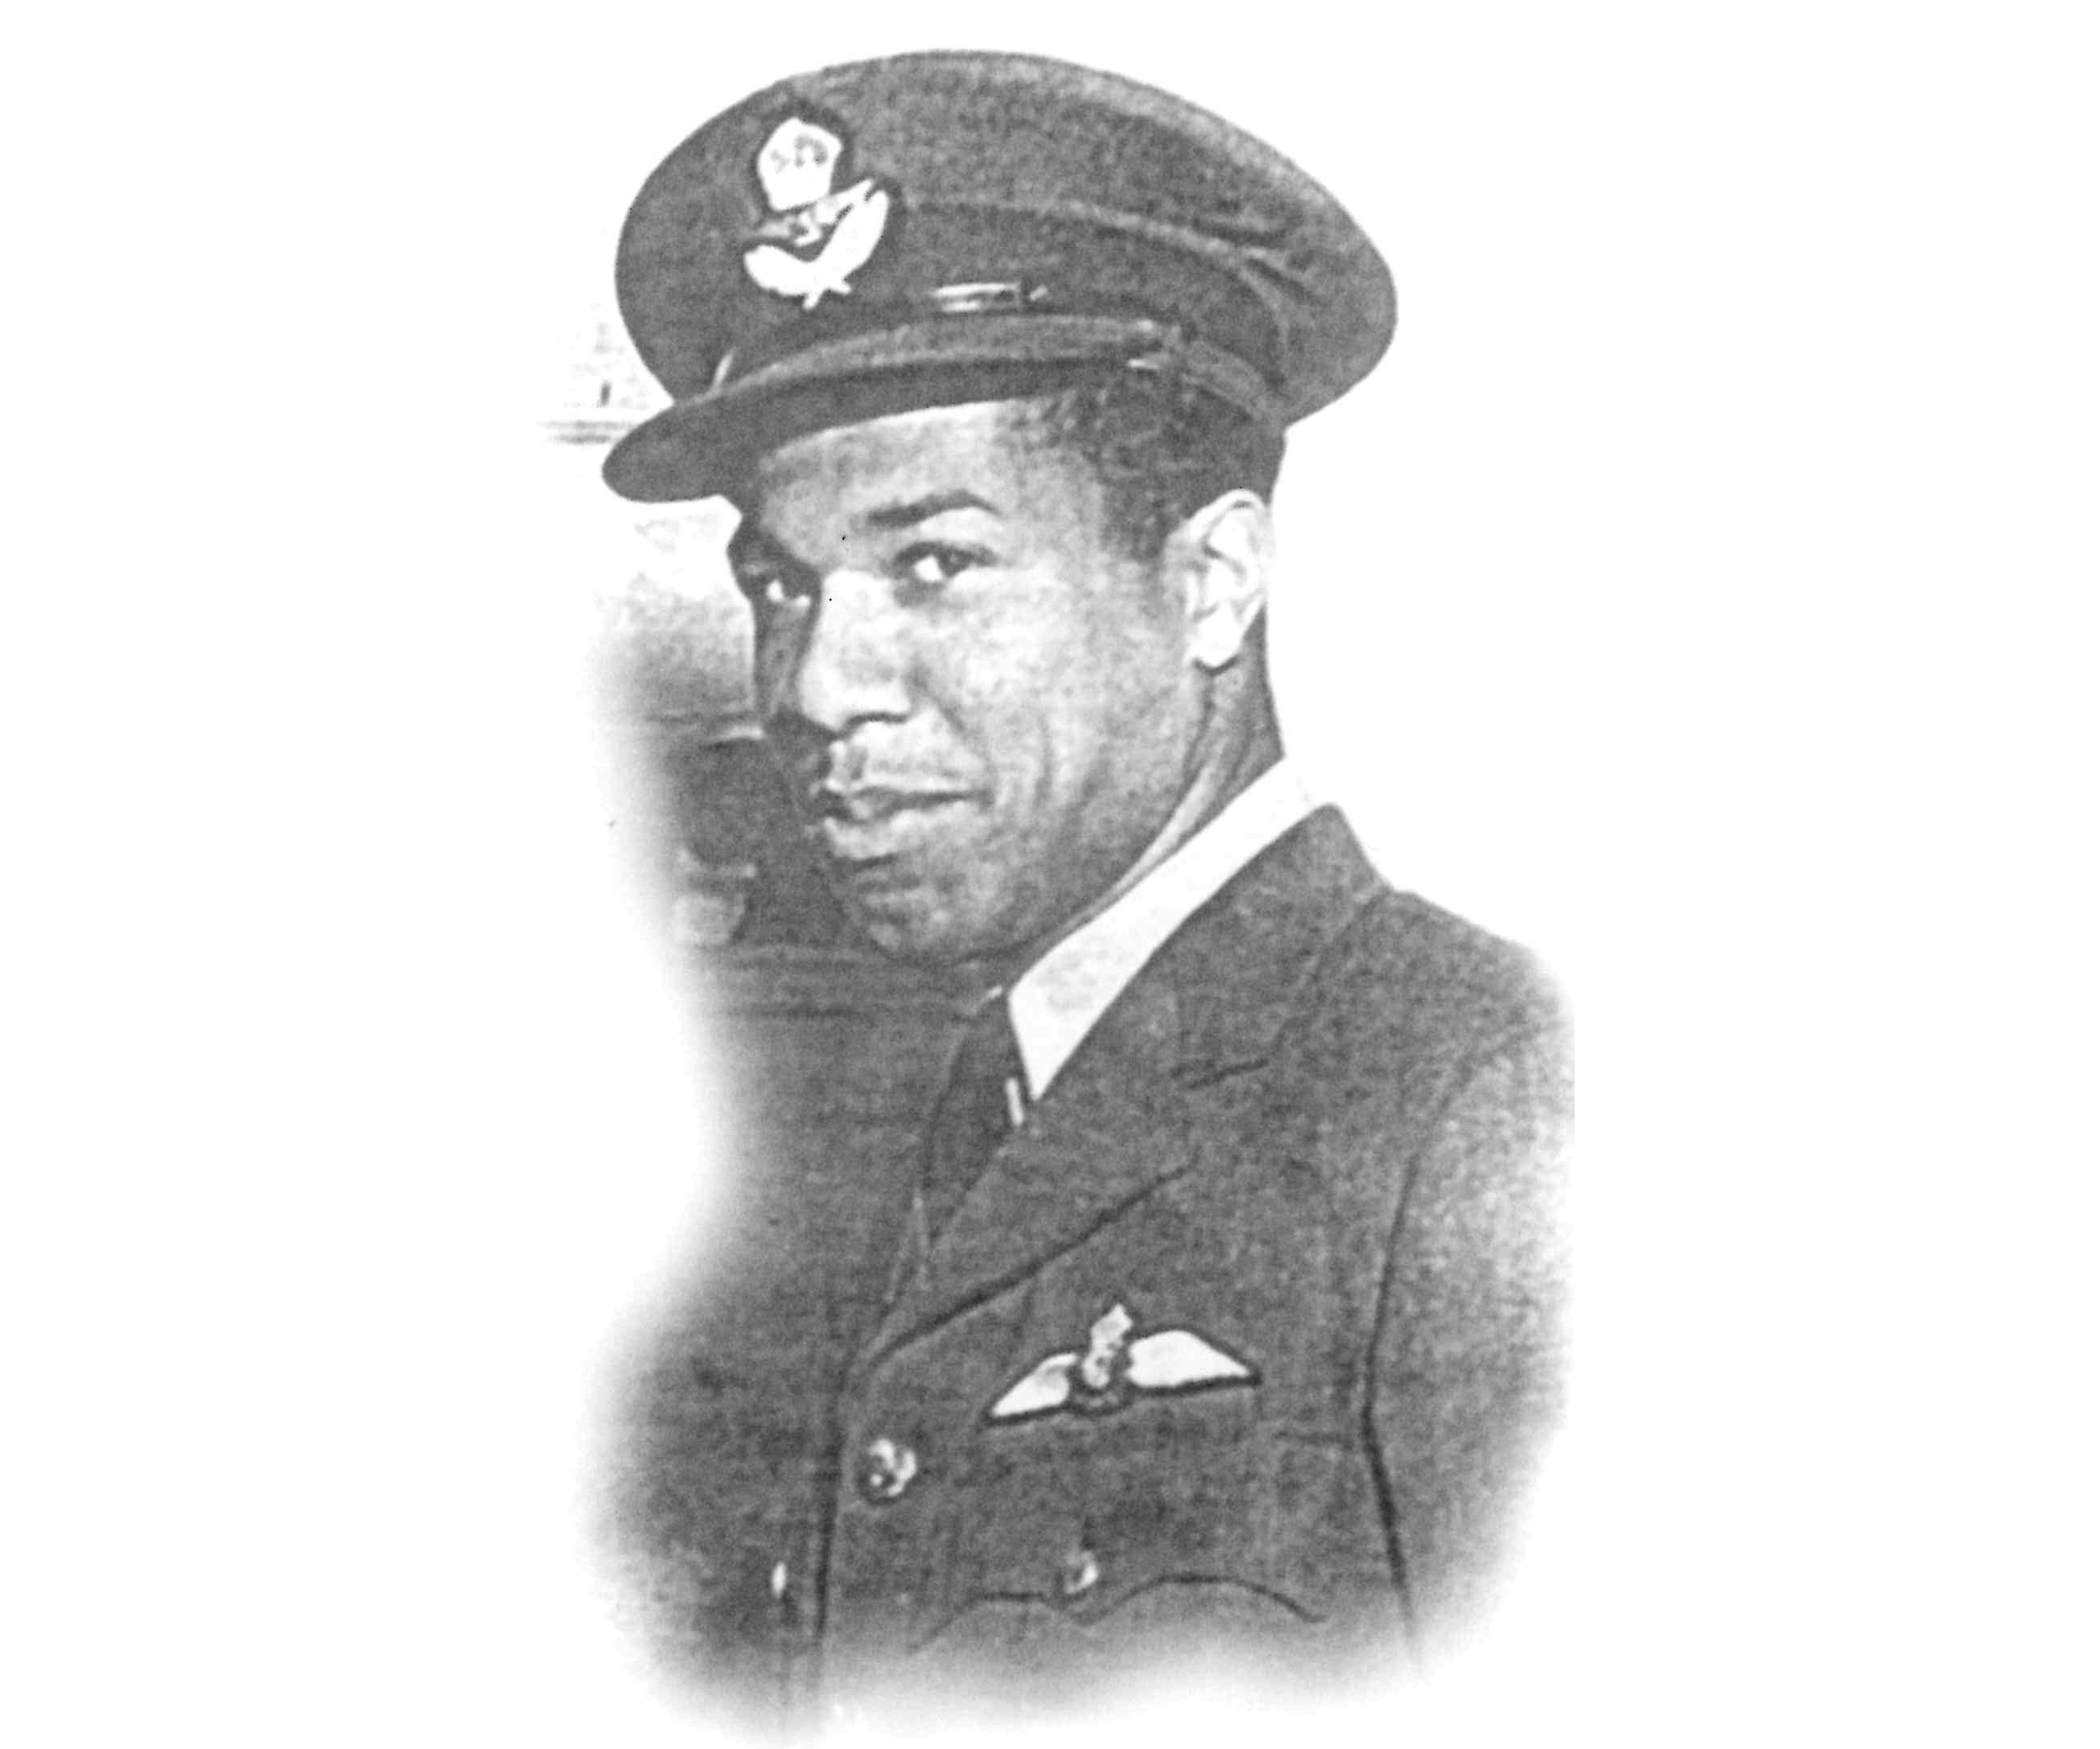 Flying Officer Allan Bundy was one of about 100 Black Canadians who served in the Royal Canadian Air Force during the Second World War. He joined in June 1942 and was possibly the first Canadian Black pilot in the RCAF. He served with 404 Squadron, flying Beaufighter and Mosquito aircraft in the highly dangerous anti-shipping role. PHOTO: Maritime Command Museum